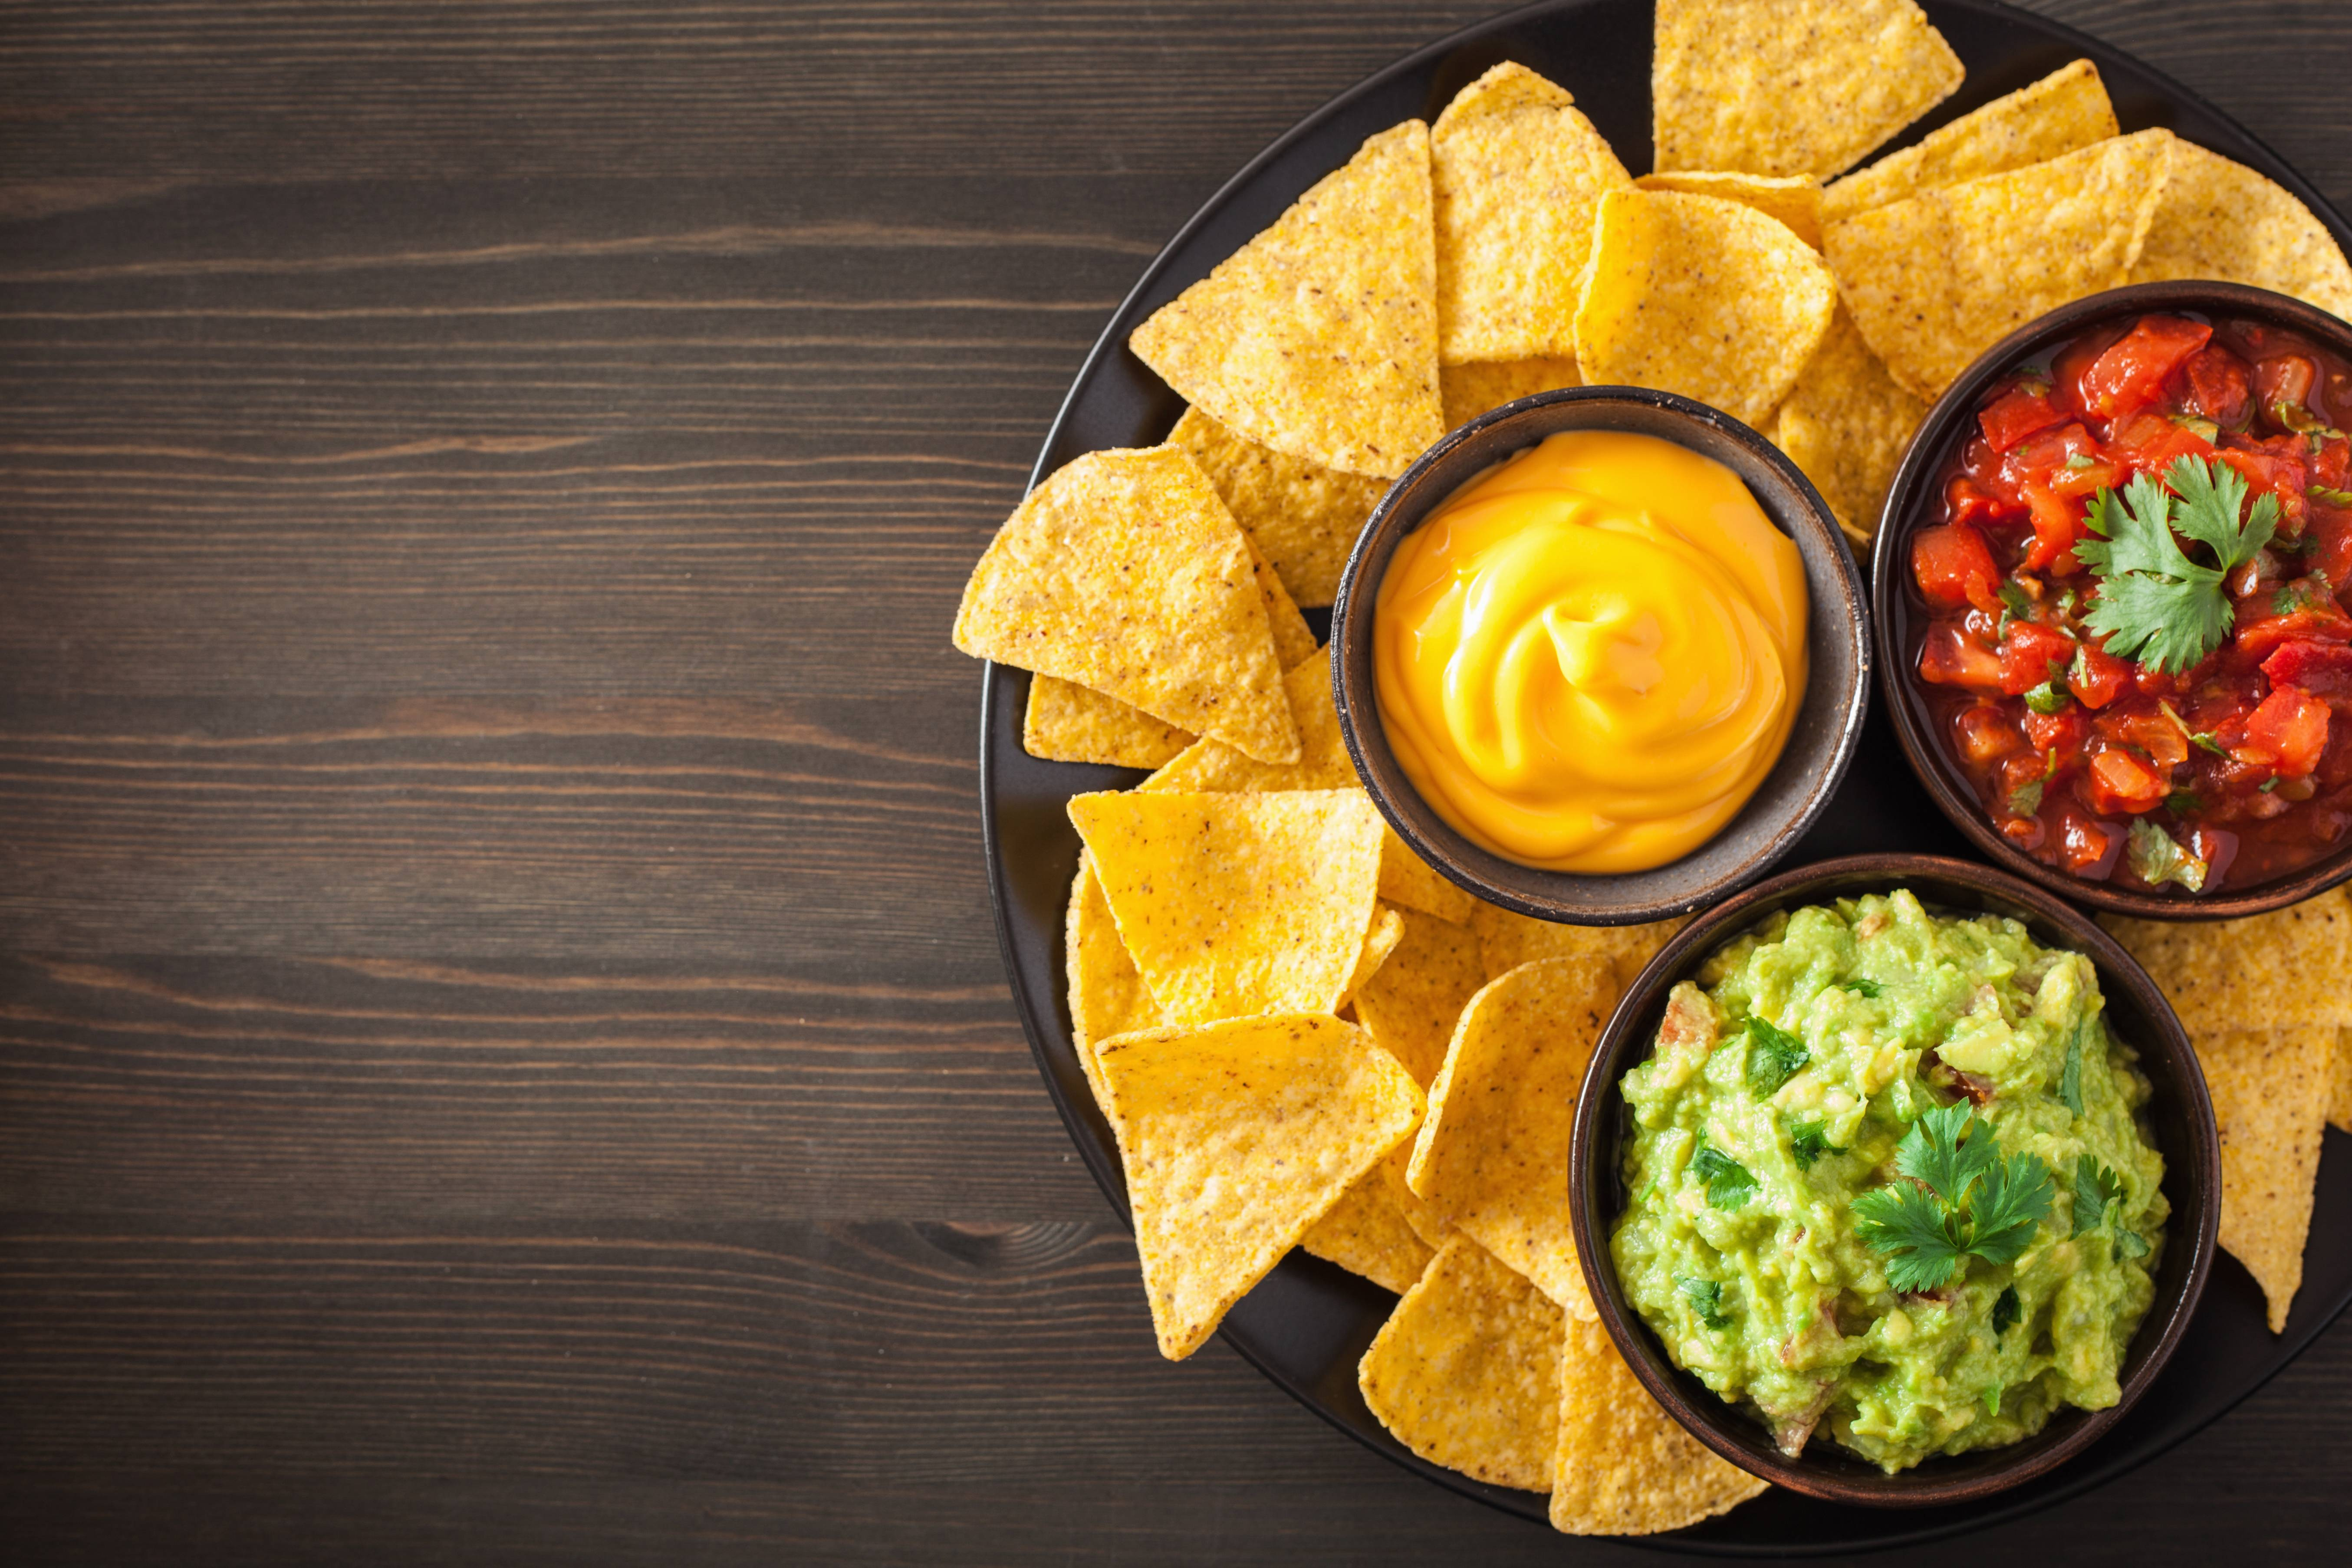 Dips, Chips, And Other Tips: Three Top Investors' Recommendations For This Quarter